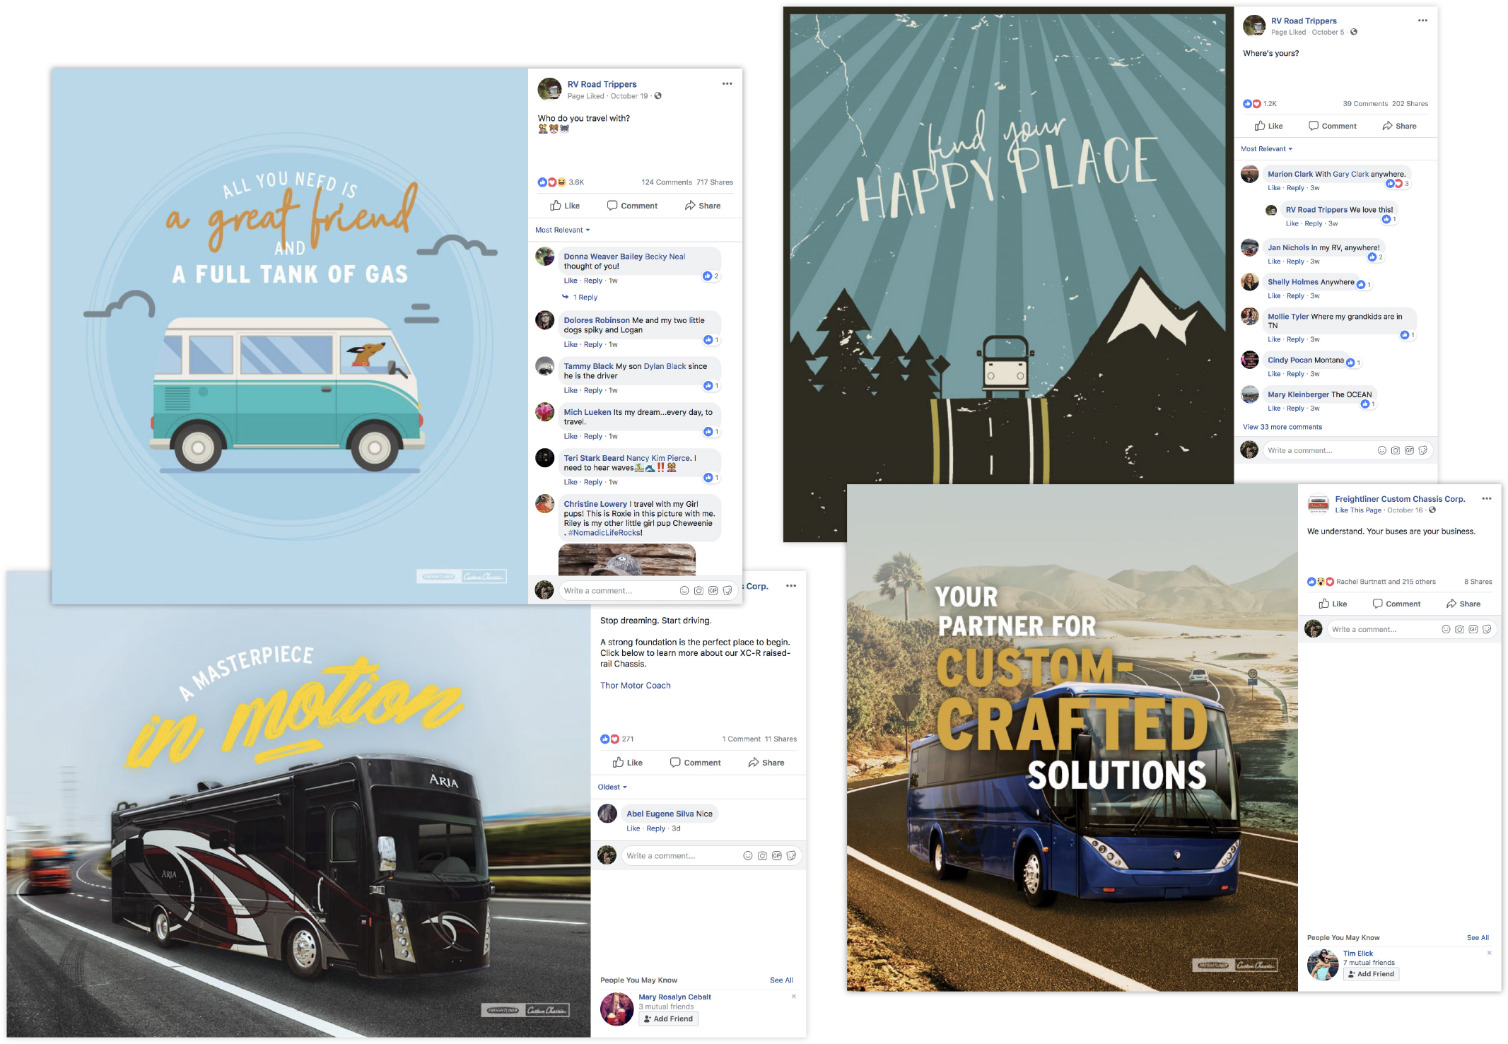 Freightliner Custom Chassis Social media campaign example collage